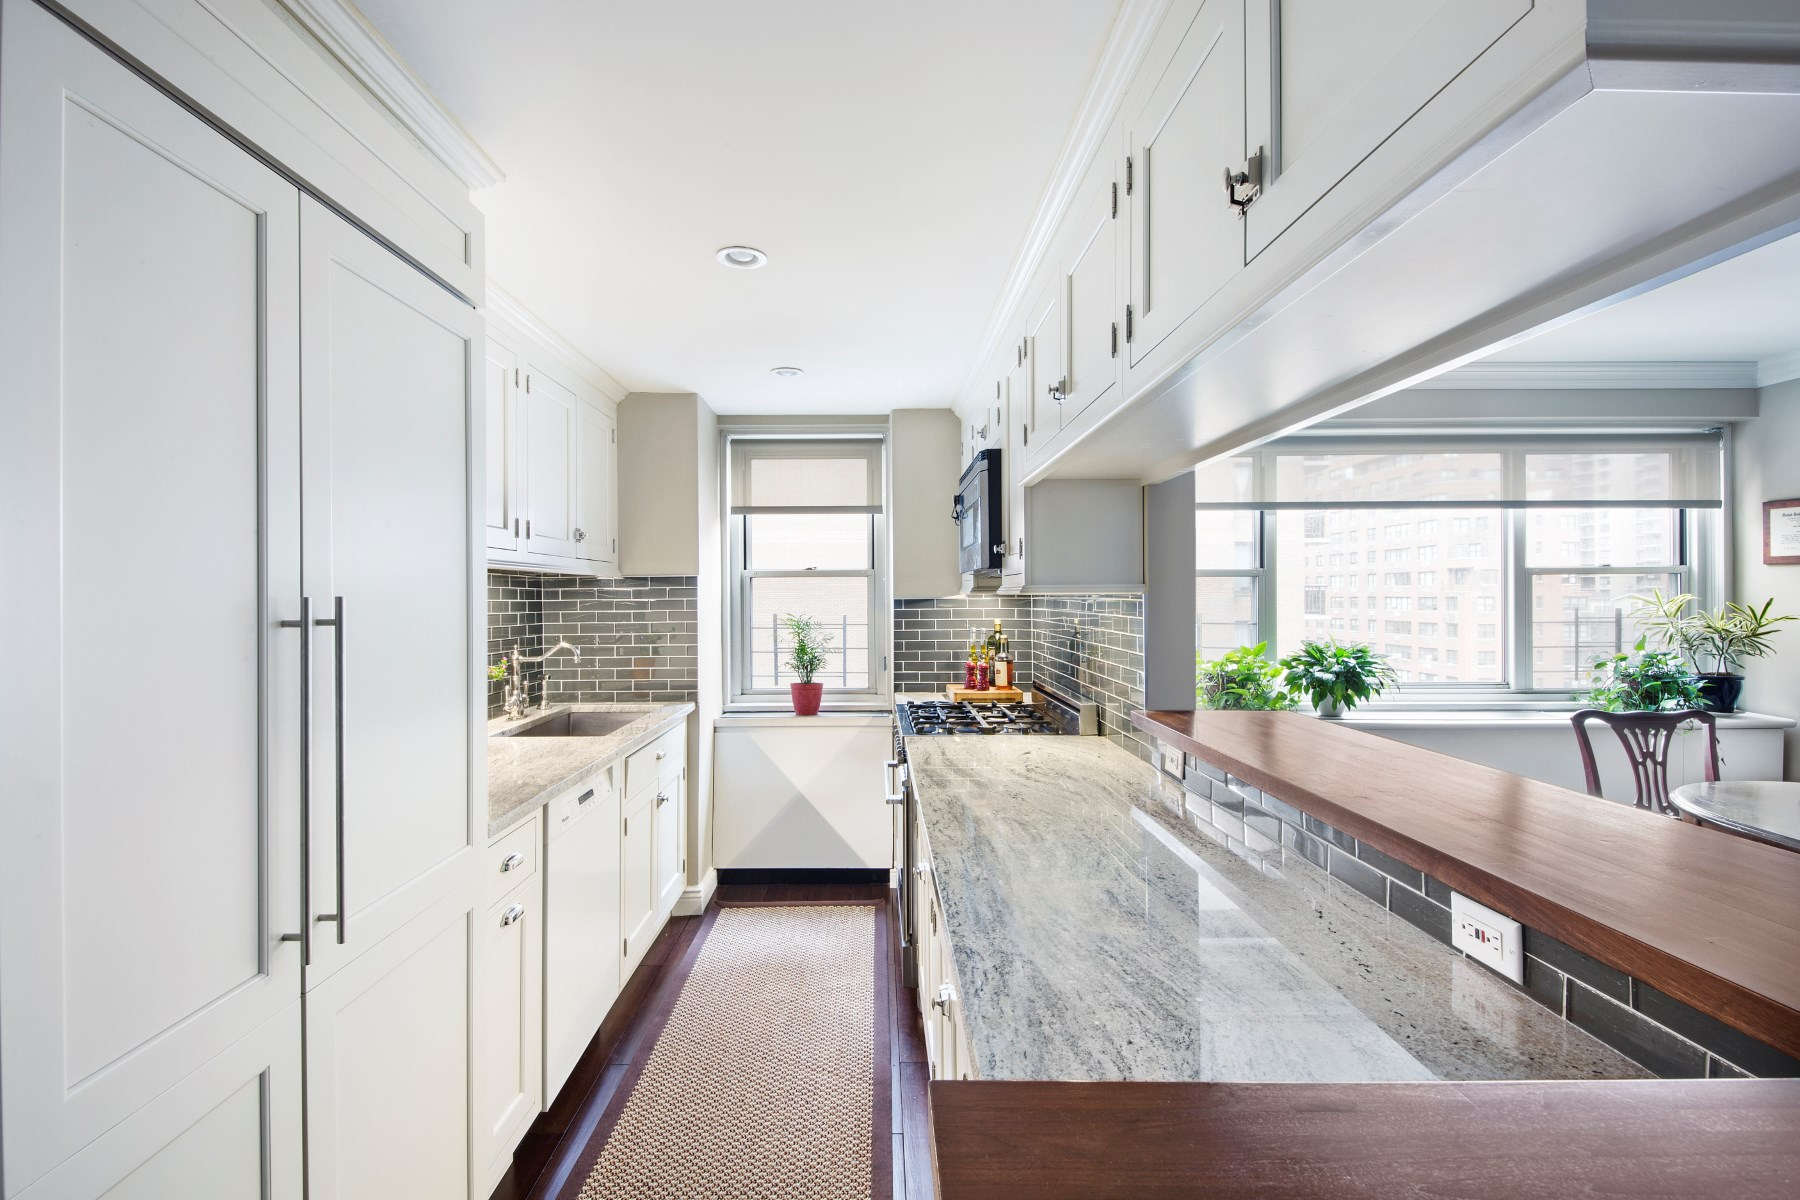 Co-op for Sale at 165 East 32nd Street, Apt 11AB 165 East 32nd Street Apt 11ab Murray Hill, New York, New York 10016 United States